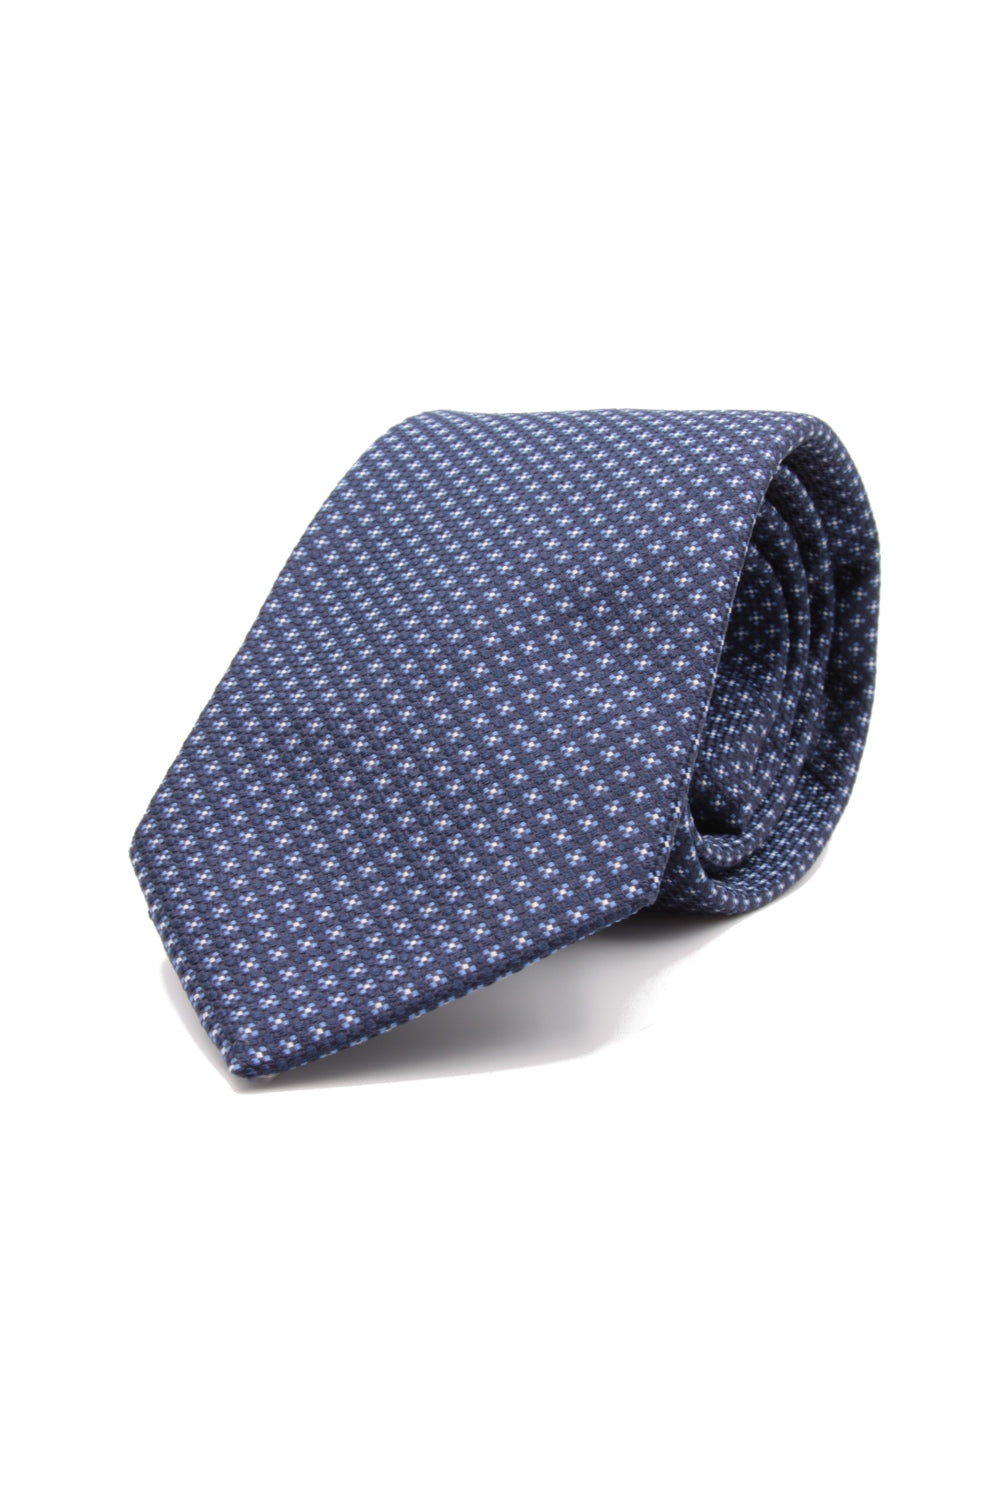 Navy blue, small light blue and white flower tie